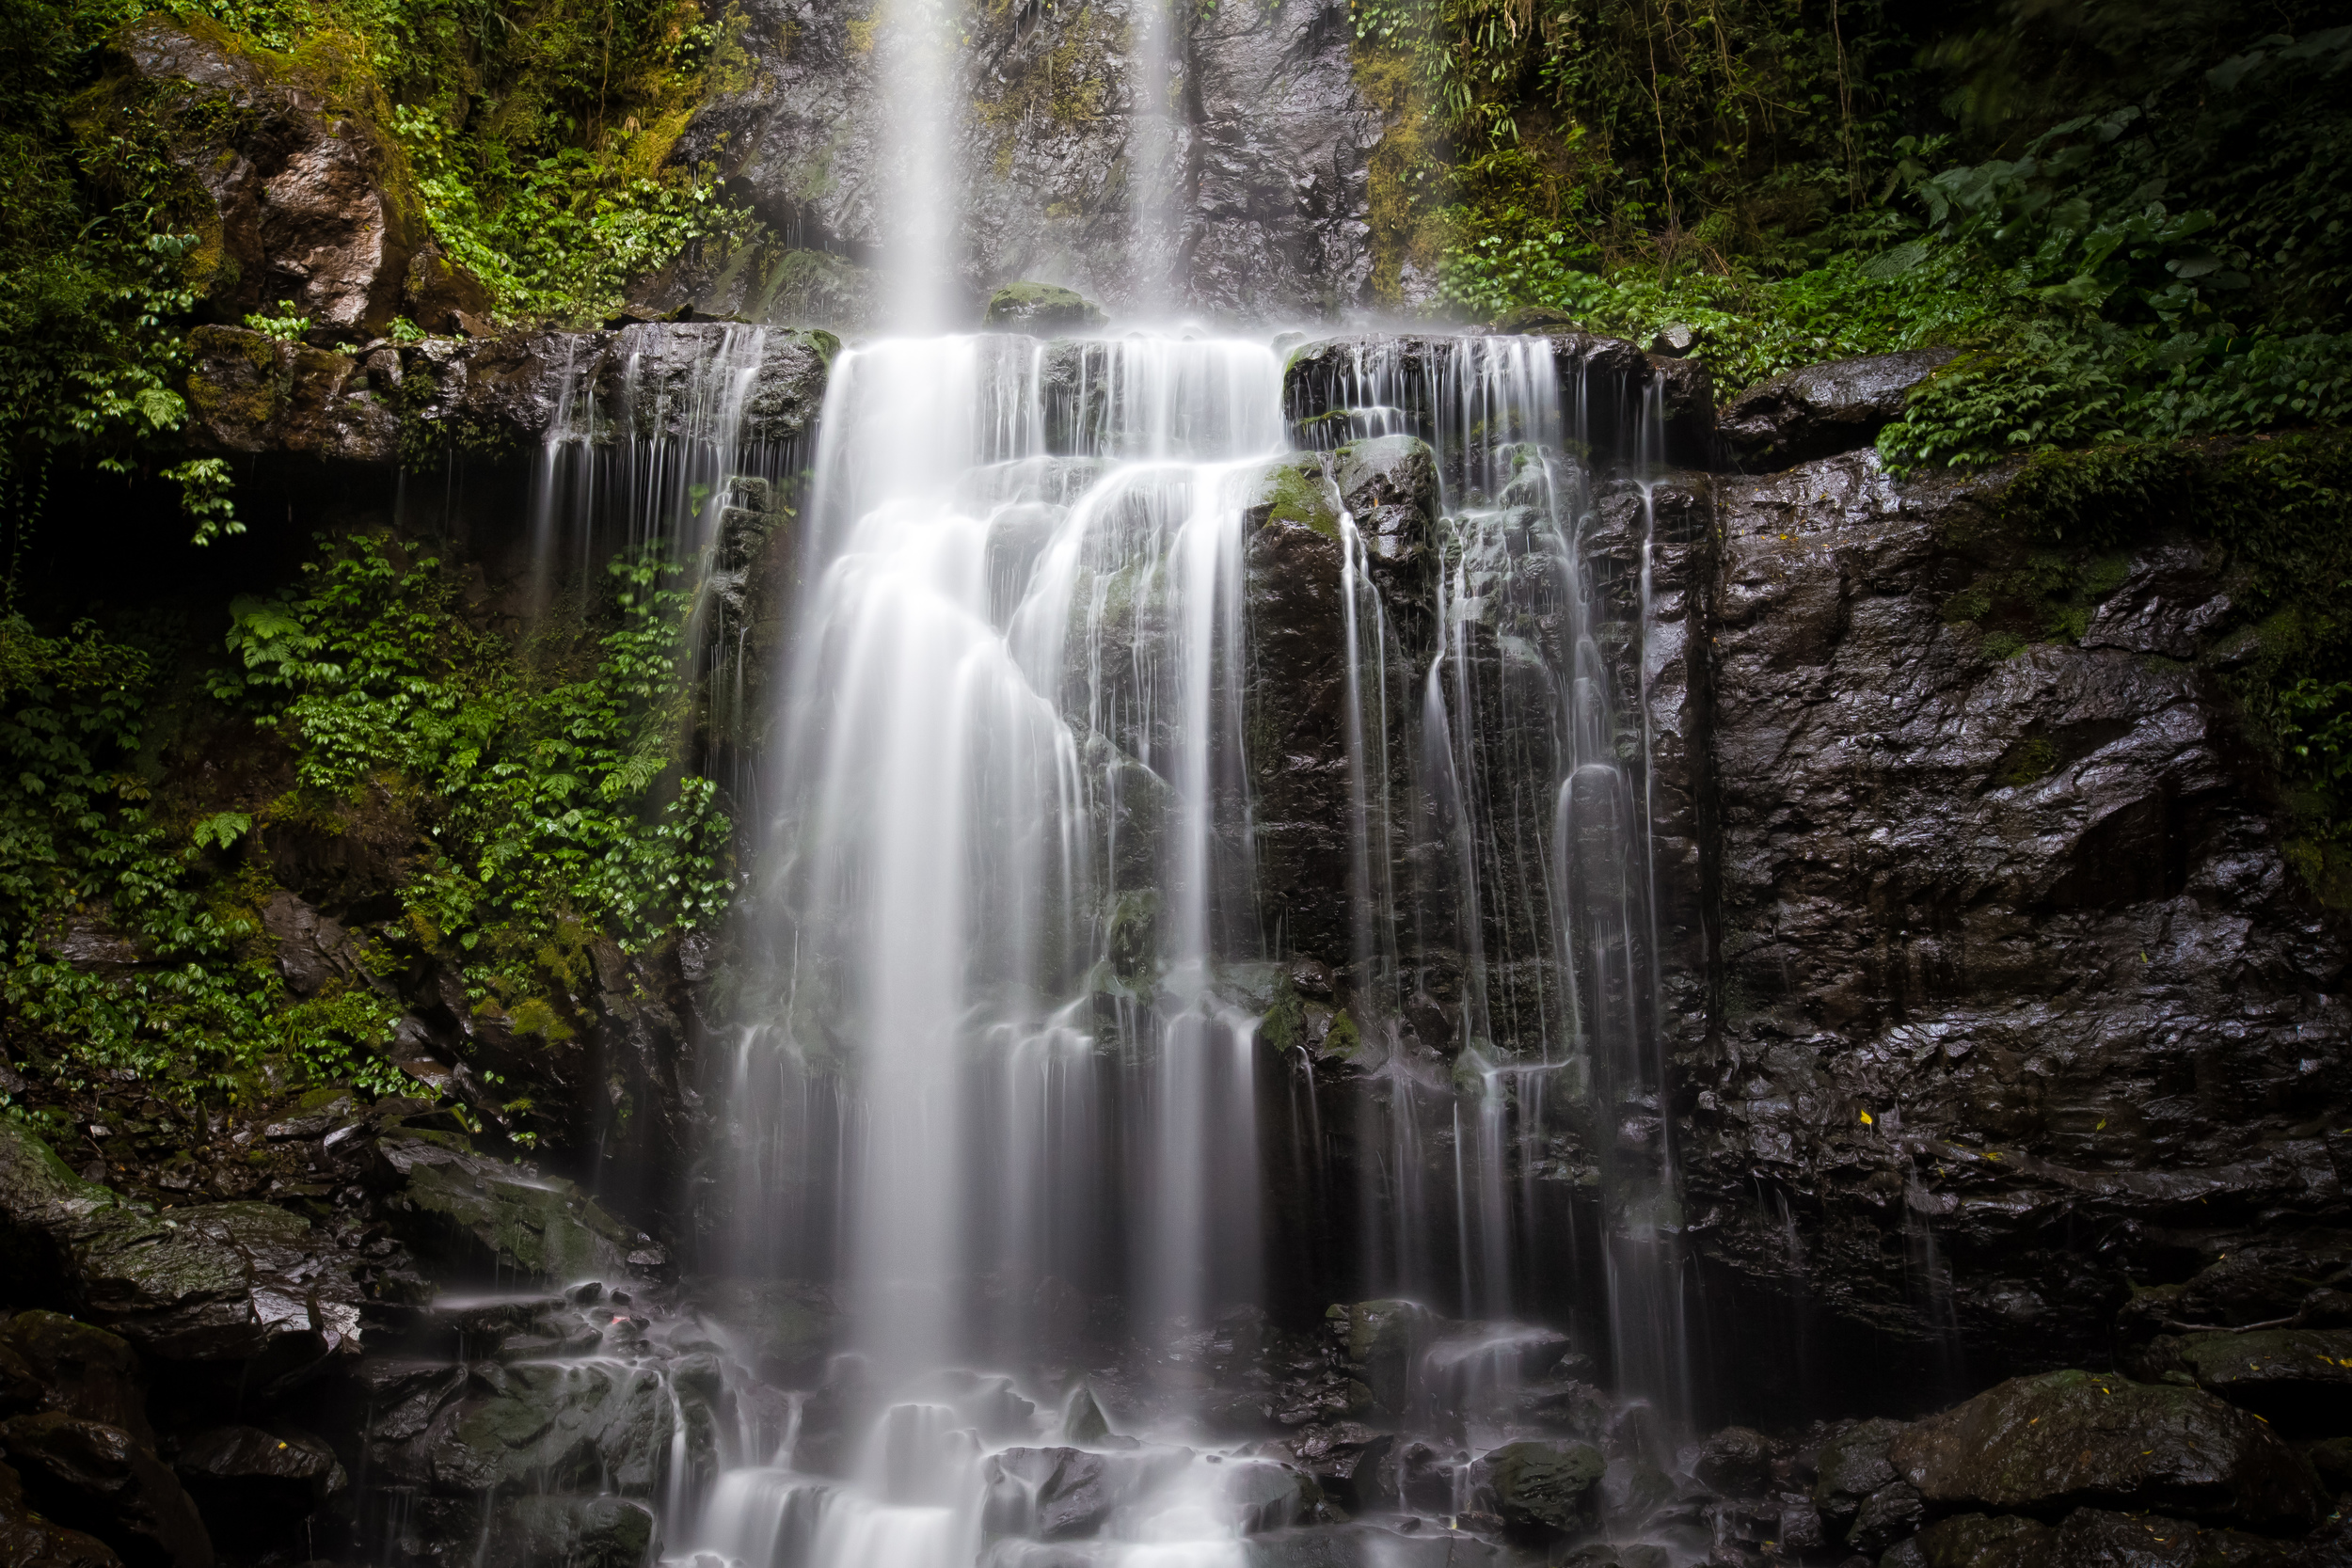 - A close up long exposure of the waterfall